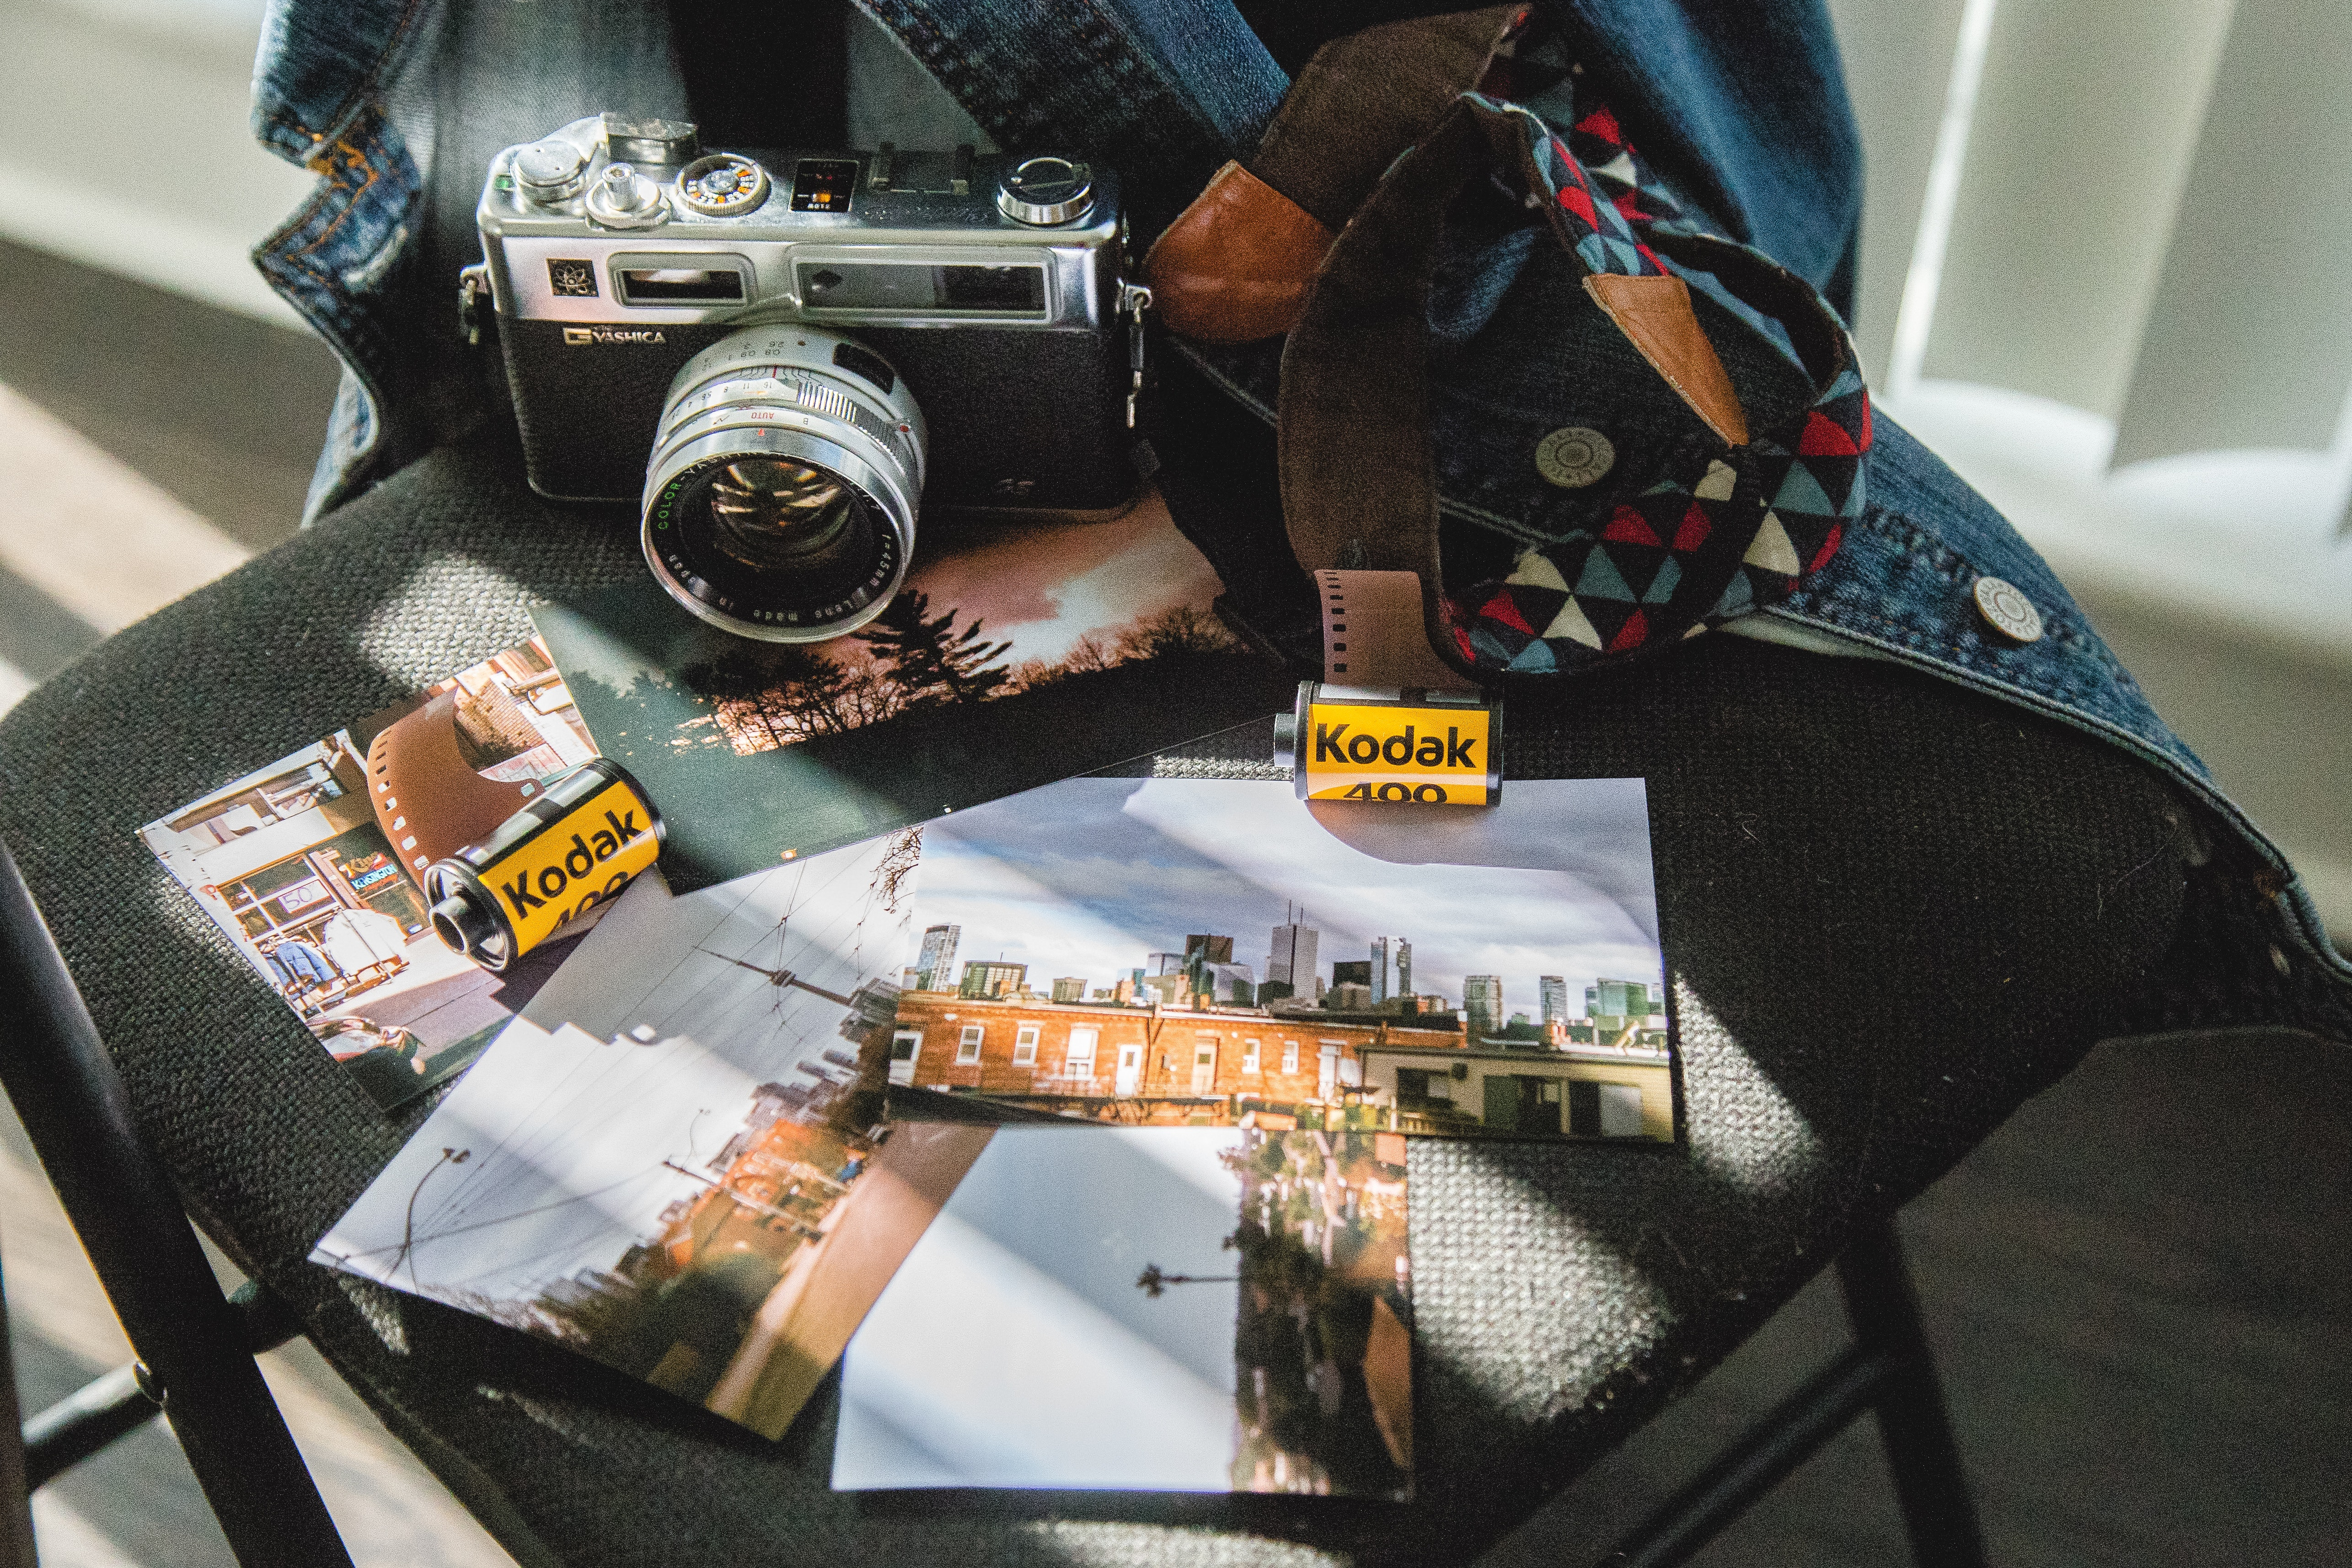 Yashica Electro 35 and prints (Pic: Wendy Wei/Pexels)